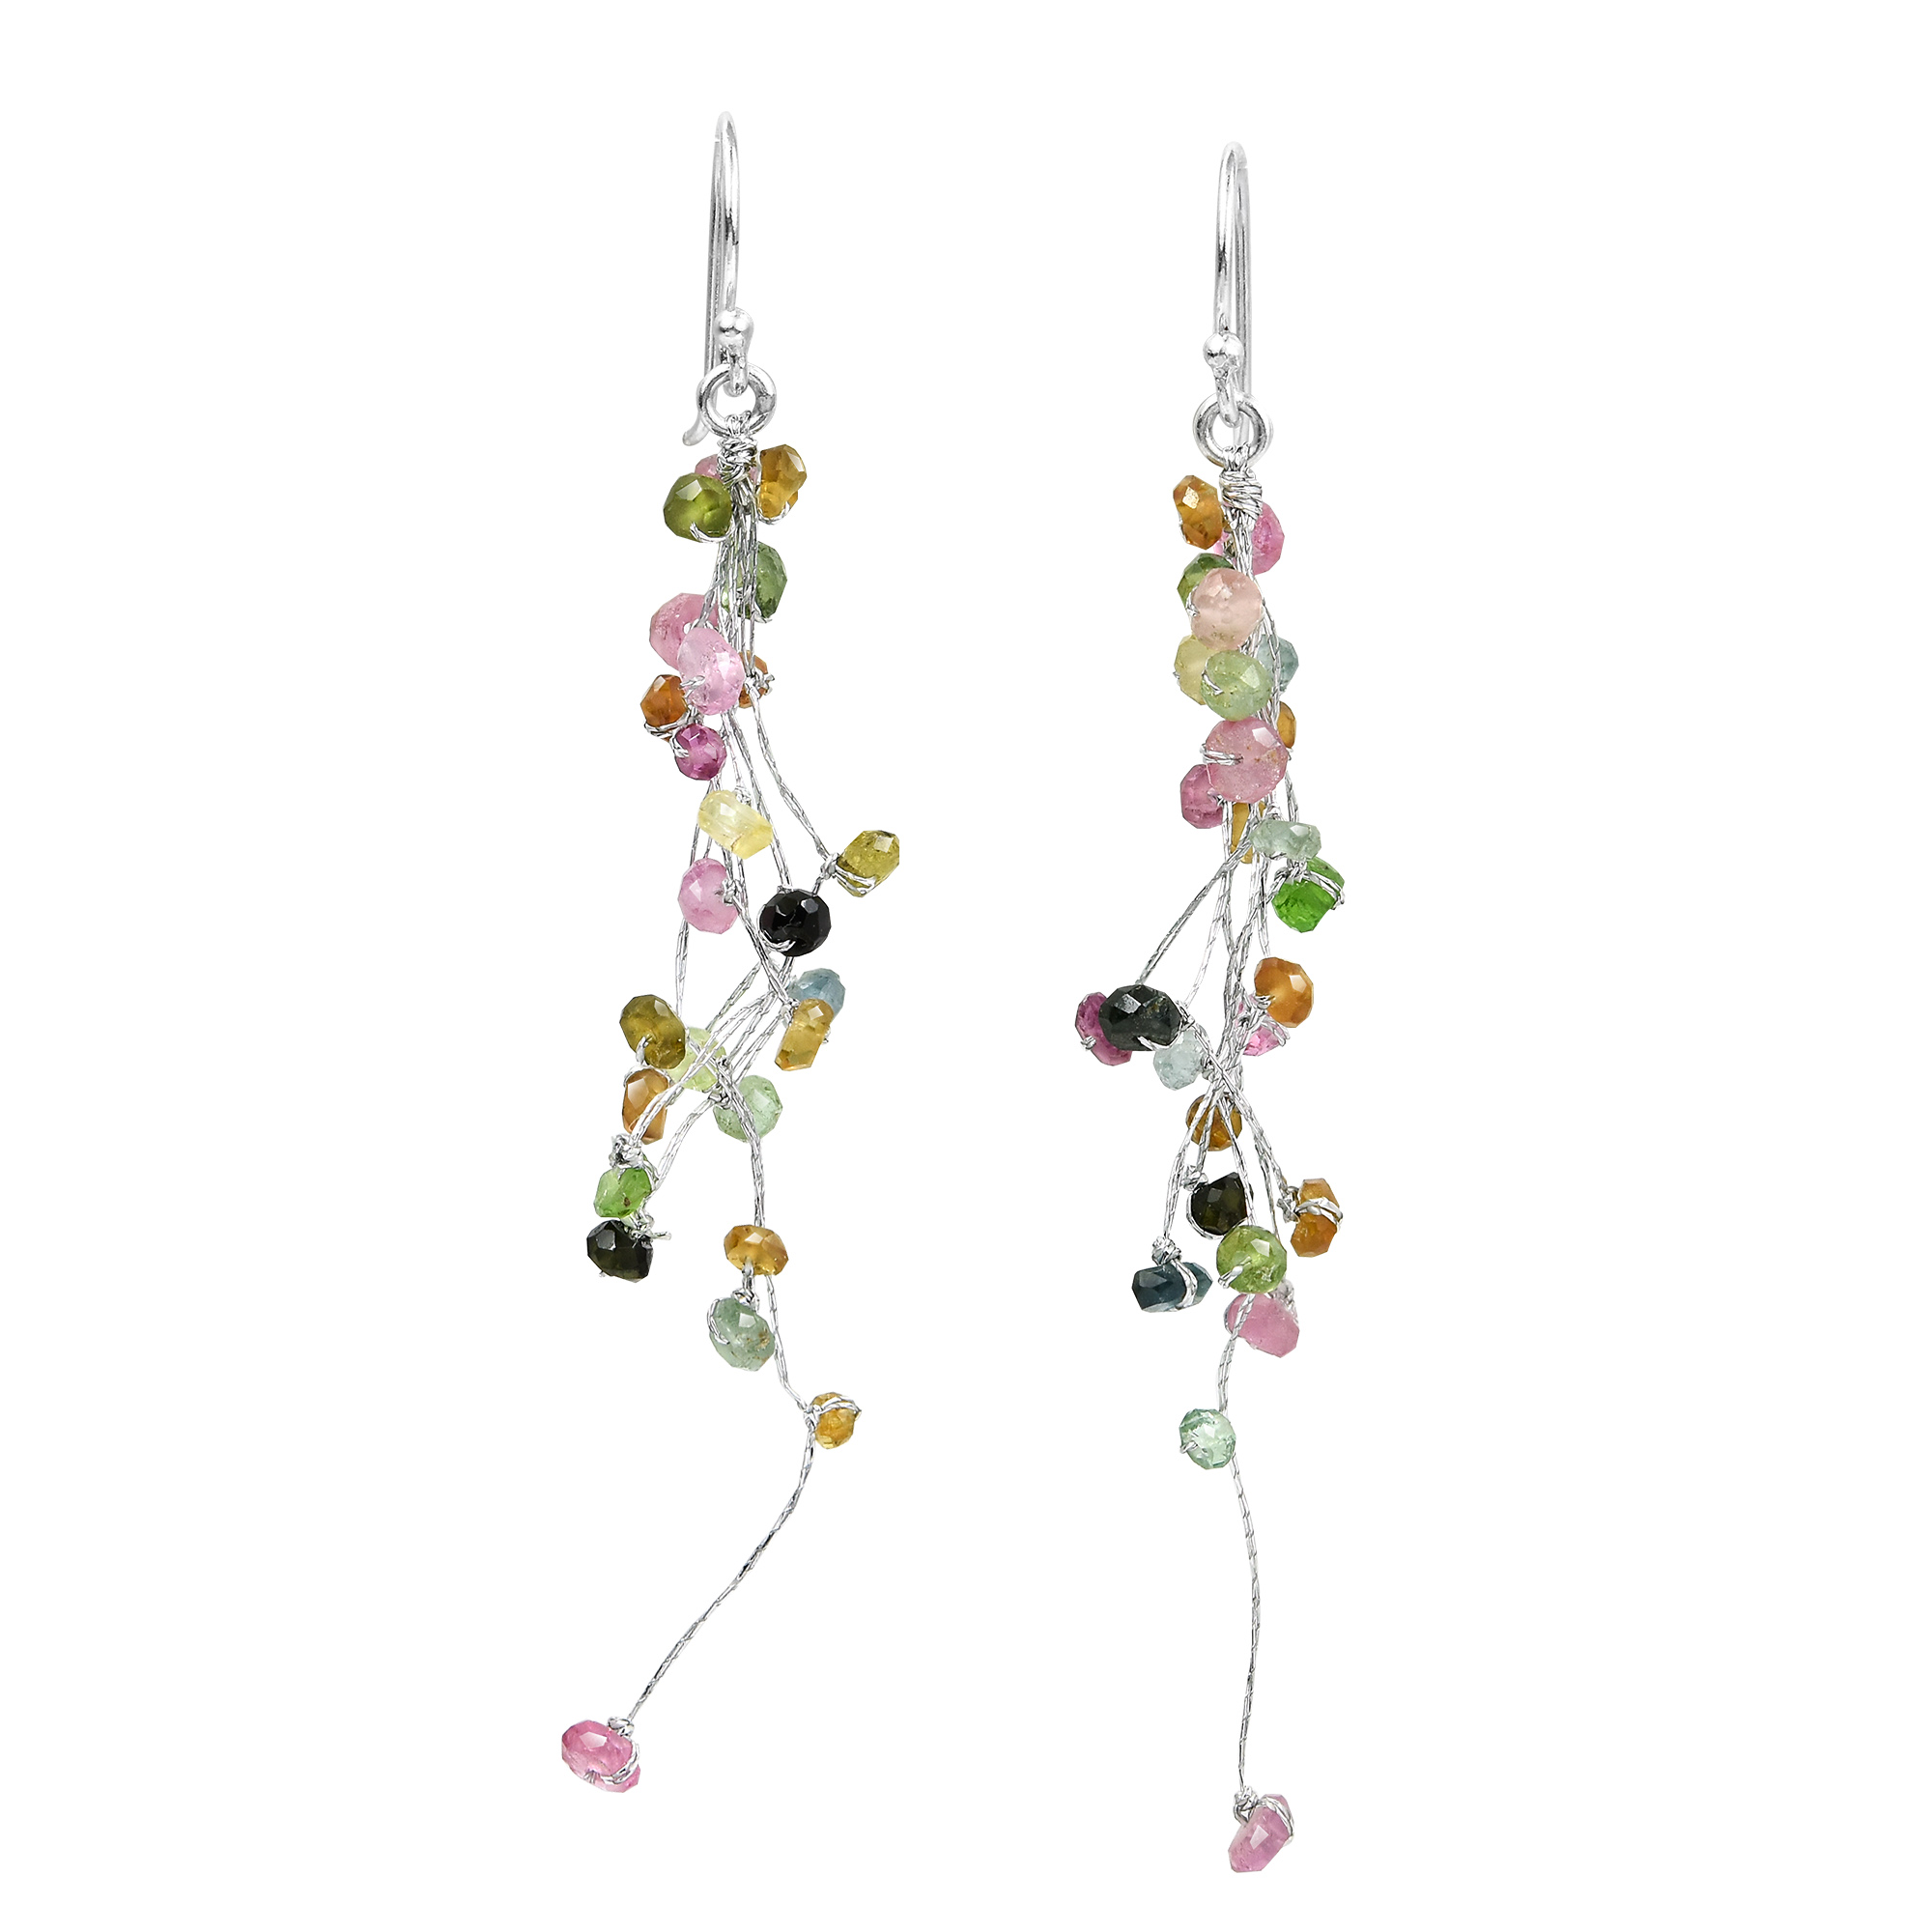 operandi moda earrings oy flow lines four colored sapphire gemstone multi long rainbow earring pin multicolor